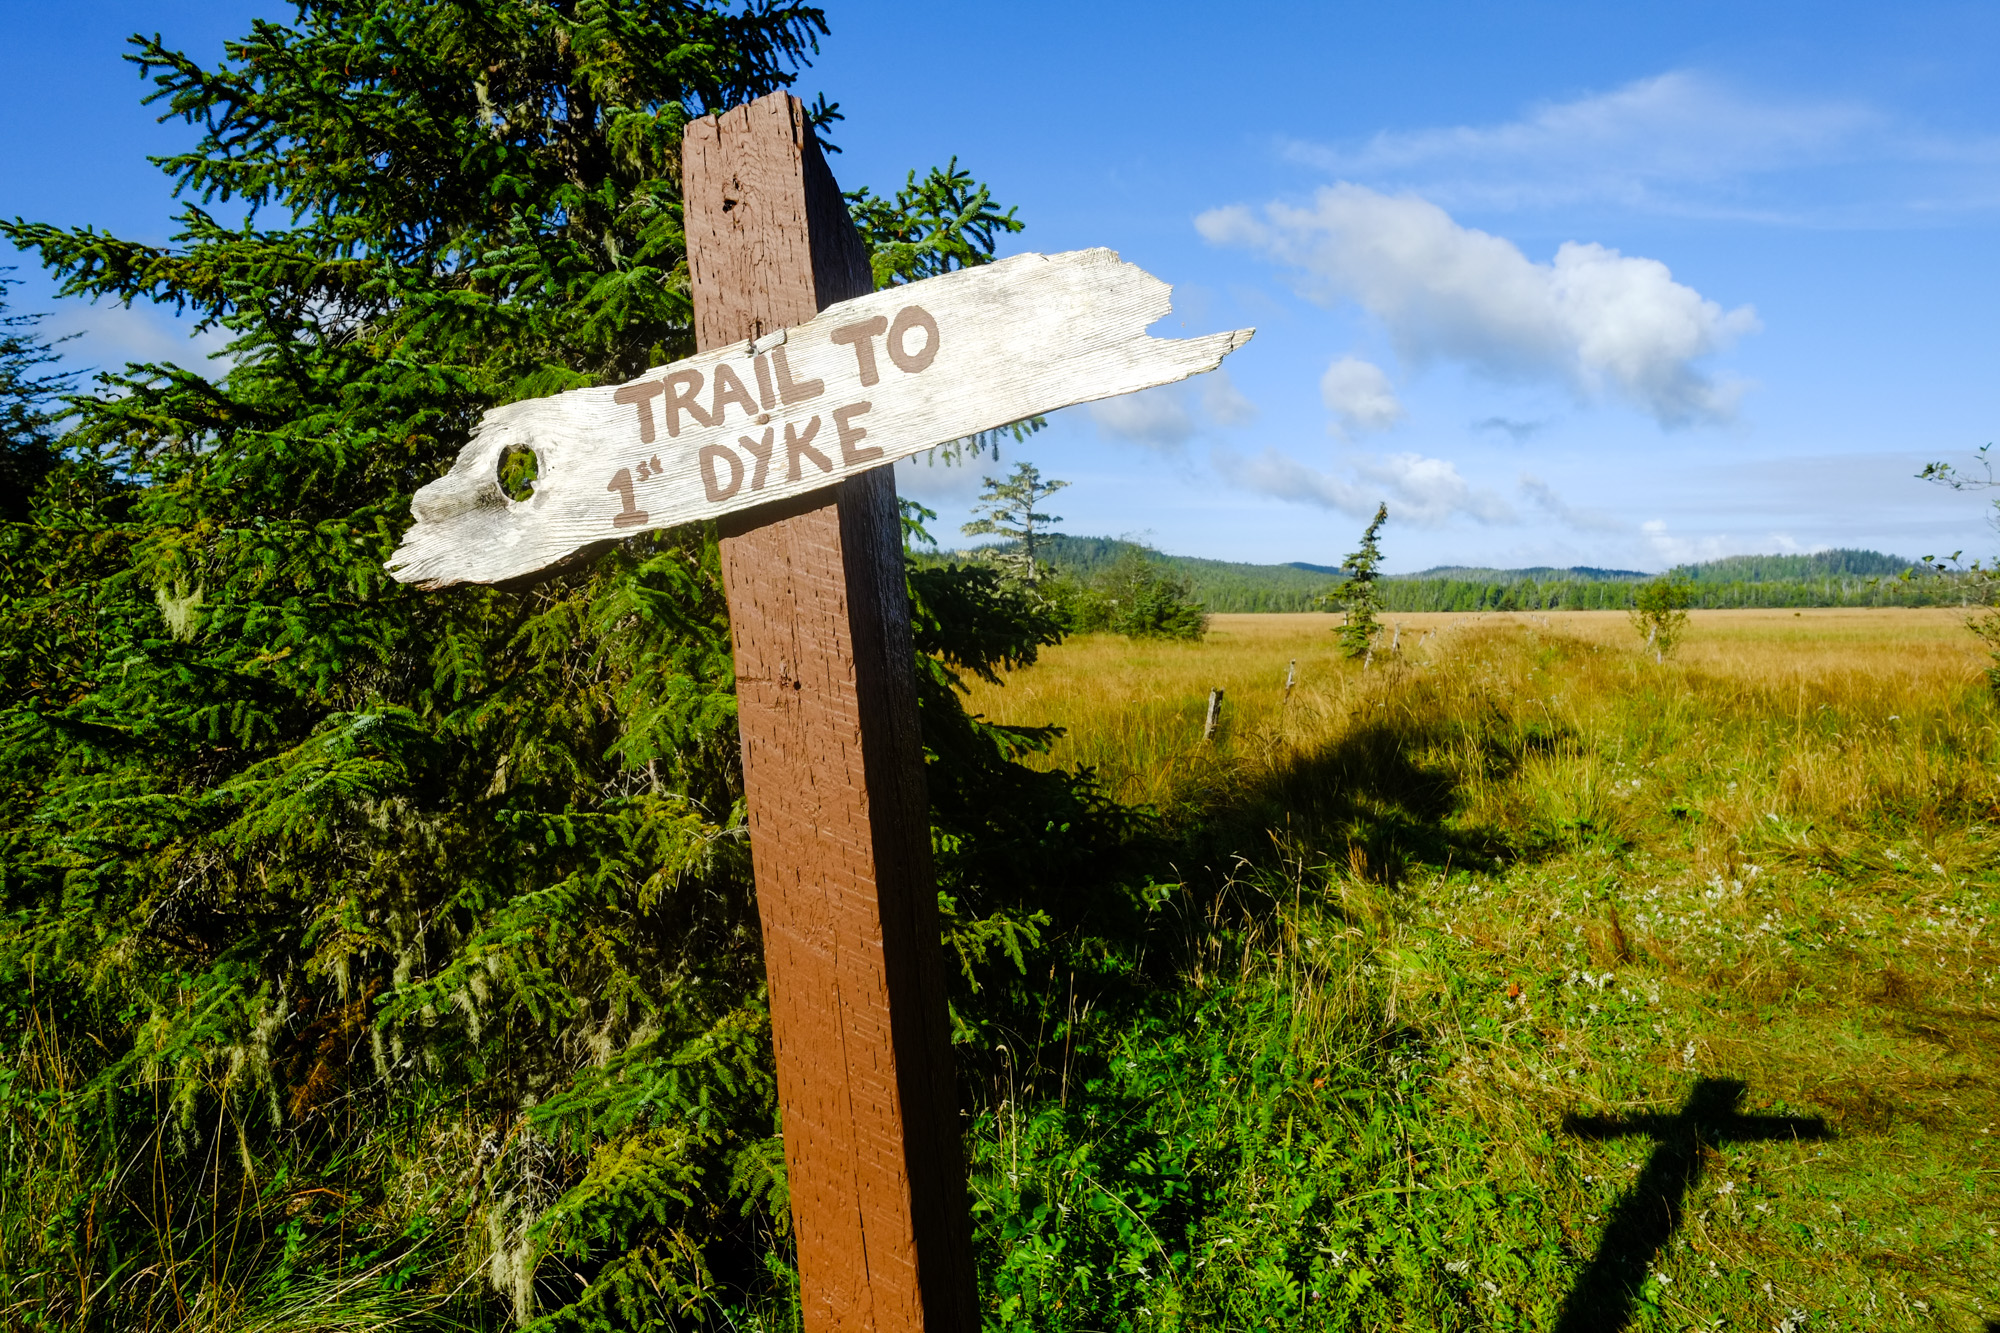 A sign points to the dyke trail.